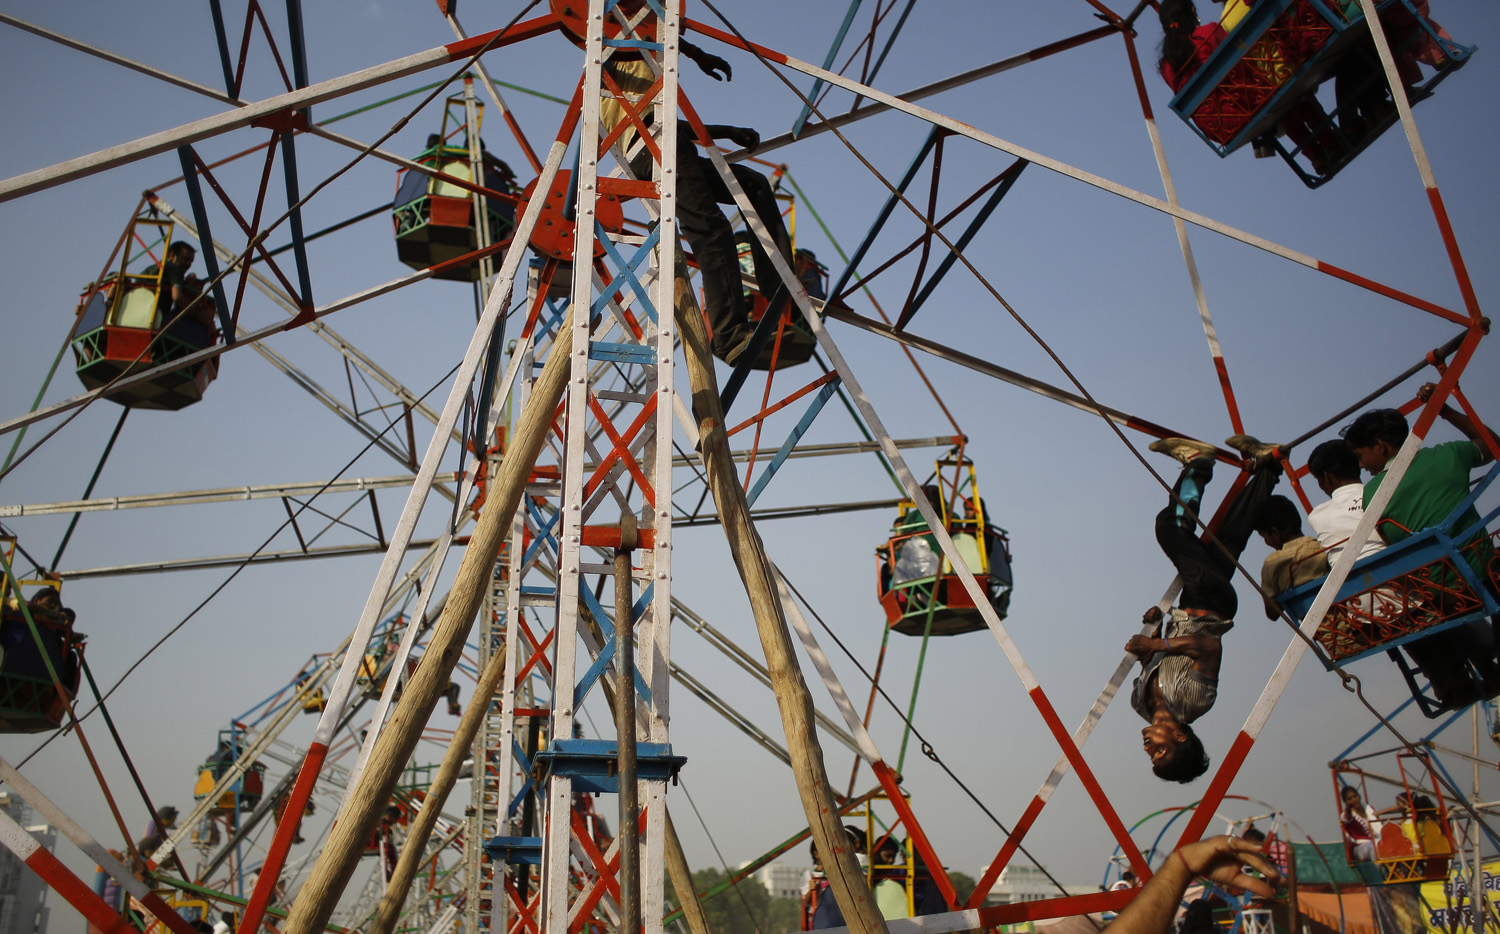 An Indian worker rides upside down to push a giant wheel at a fair ground before the burning of effigies of demon king Ravana during Dussehra celebrations on the outskirts of New Delhi, India, on Oct. 3, 2014.